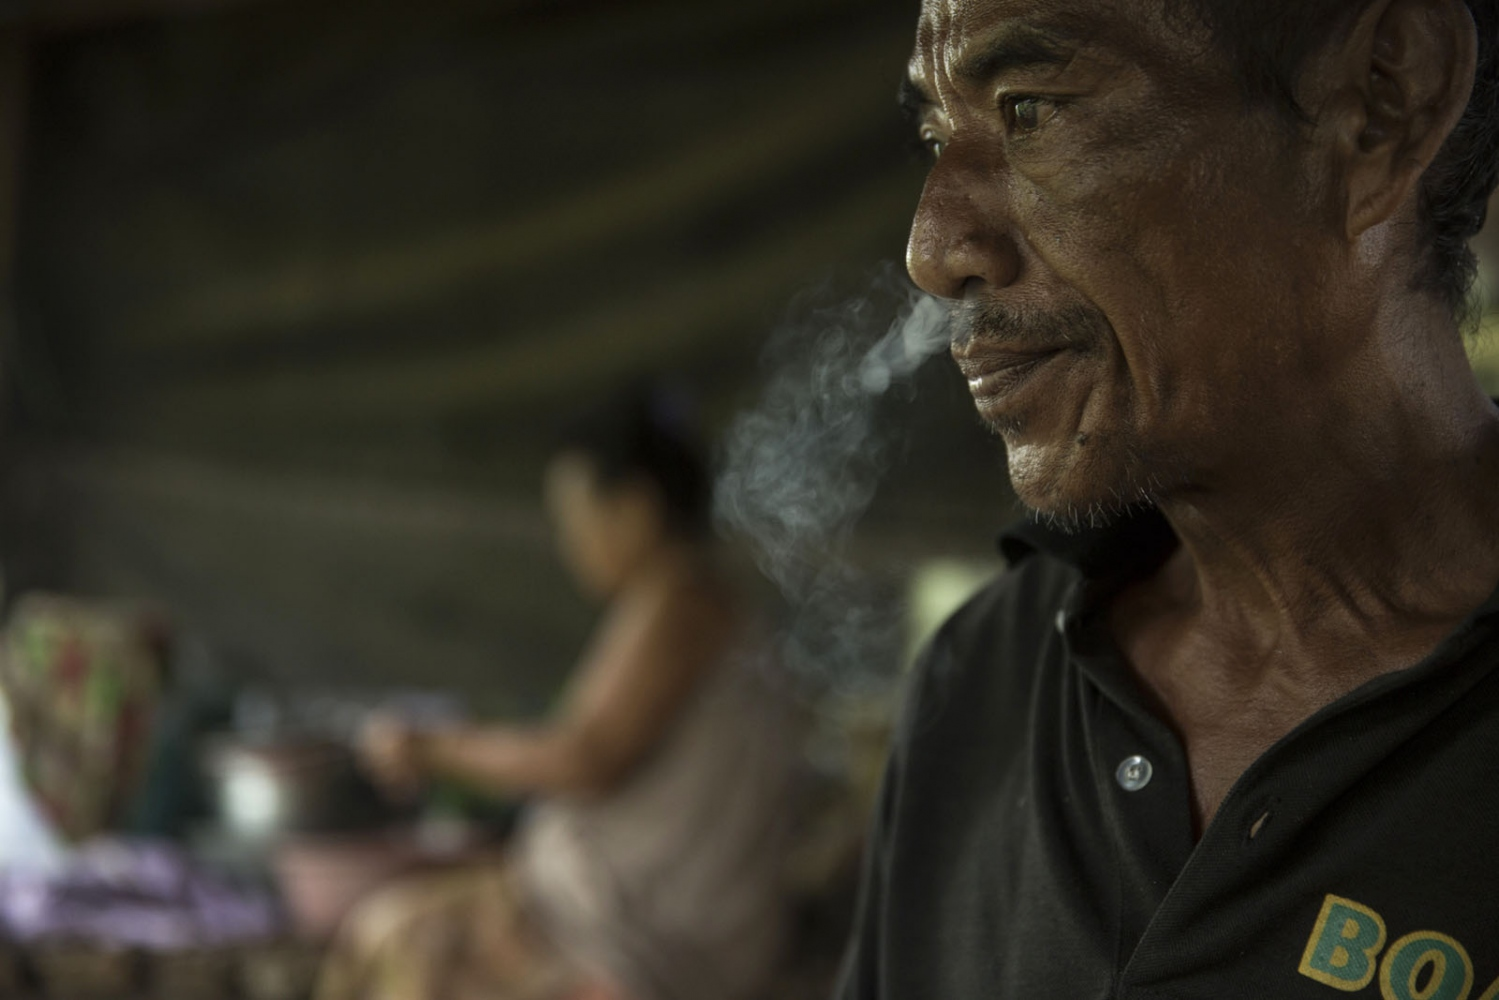 Sukon Dongwun, 54, smokes a cigarette in a neighbours house. May 2016.